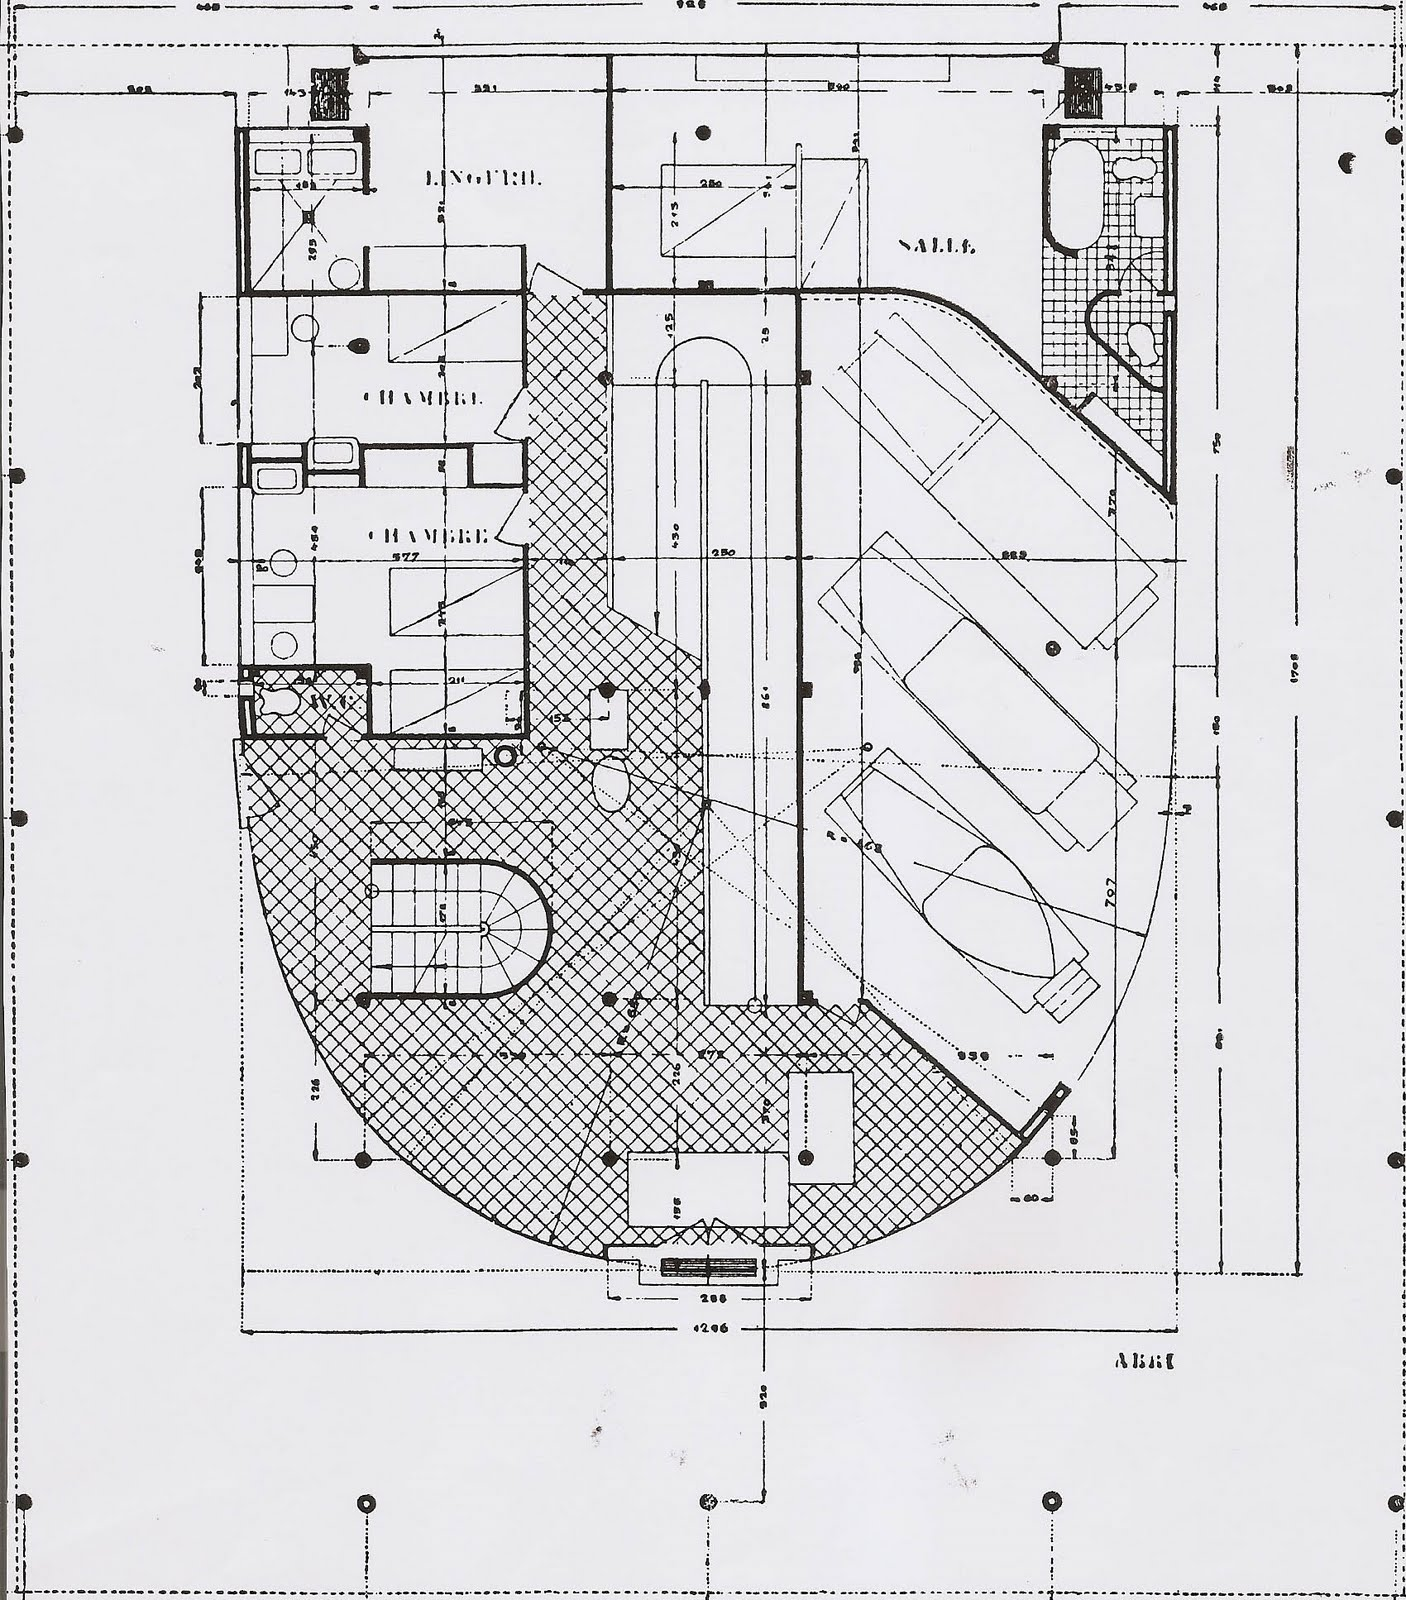 File Pinoy Big Brother House Floor Plan as well 53aa4fc7c07a80e732000085 Jiahe Boutique Hotel Shangai Dushe Architecture Design Floor Plan 1 additionally Railroad 20Plans moreover 1 Kanal House Design also Villa Savoye Plans. on 1 floor house plans